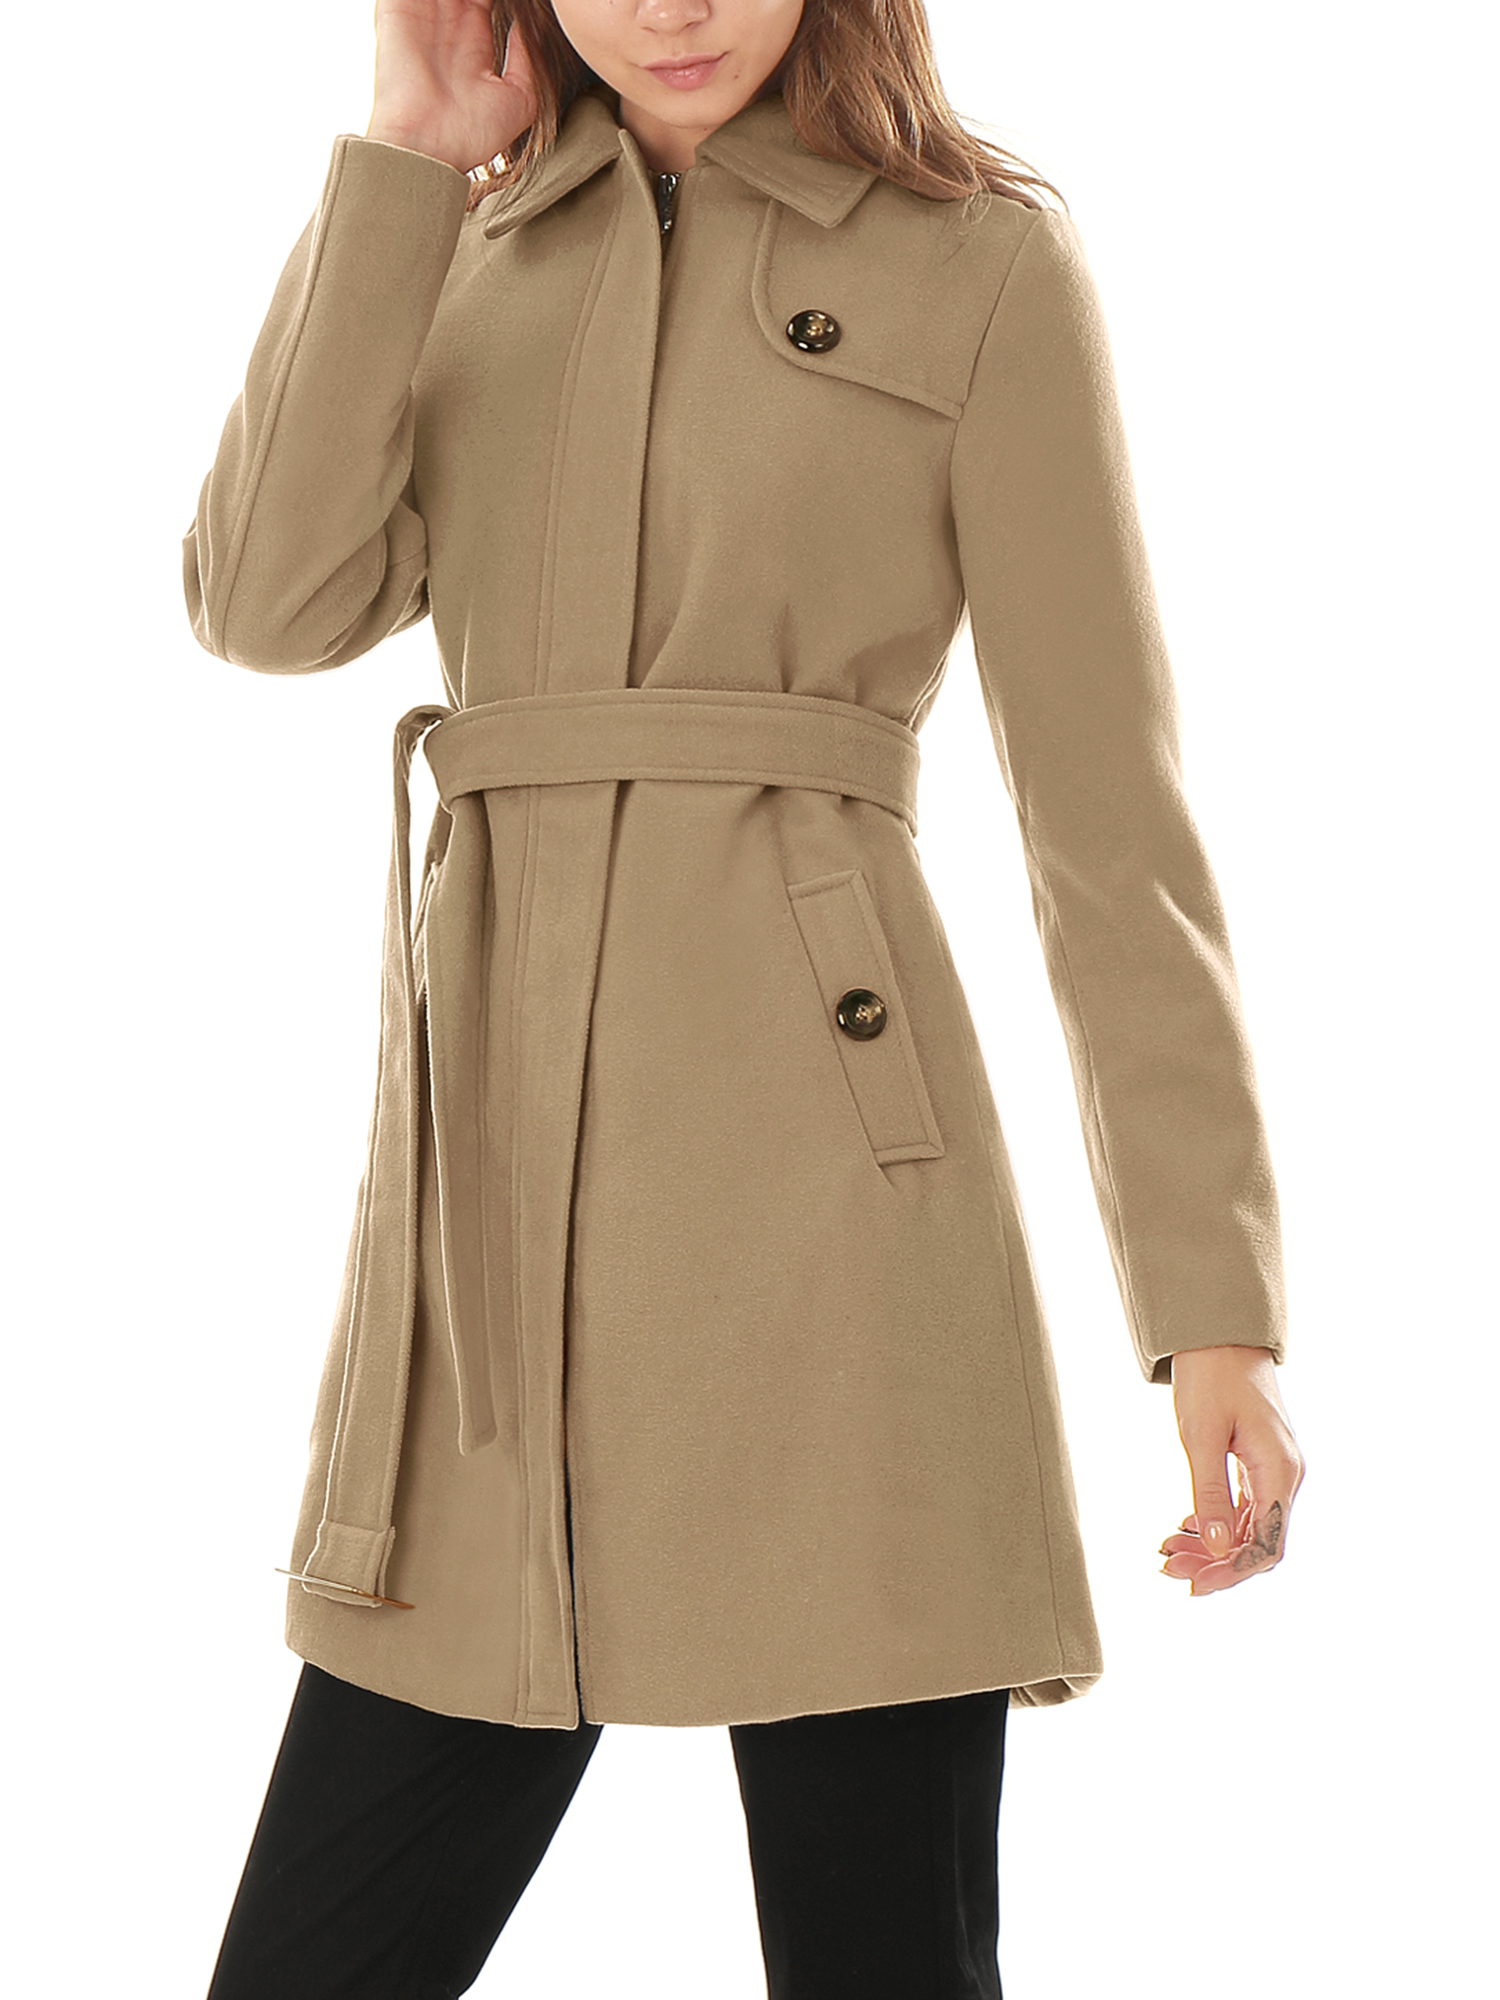 Women's Convertible Collar Long Sleeves Belted Worsted Coat Beige (Size M / 8)